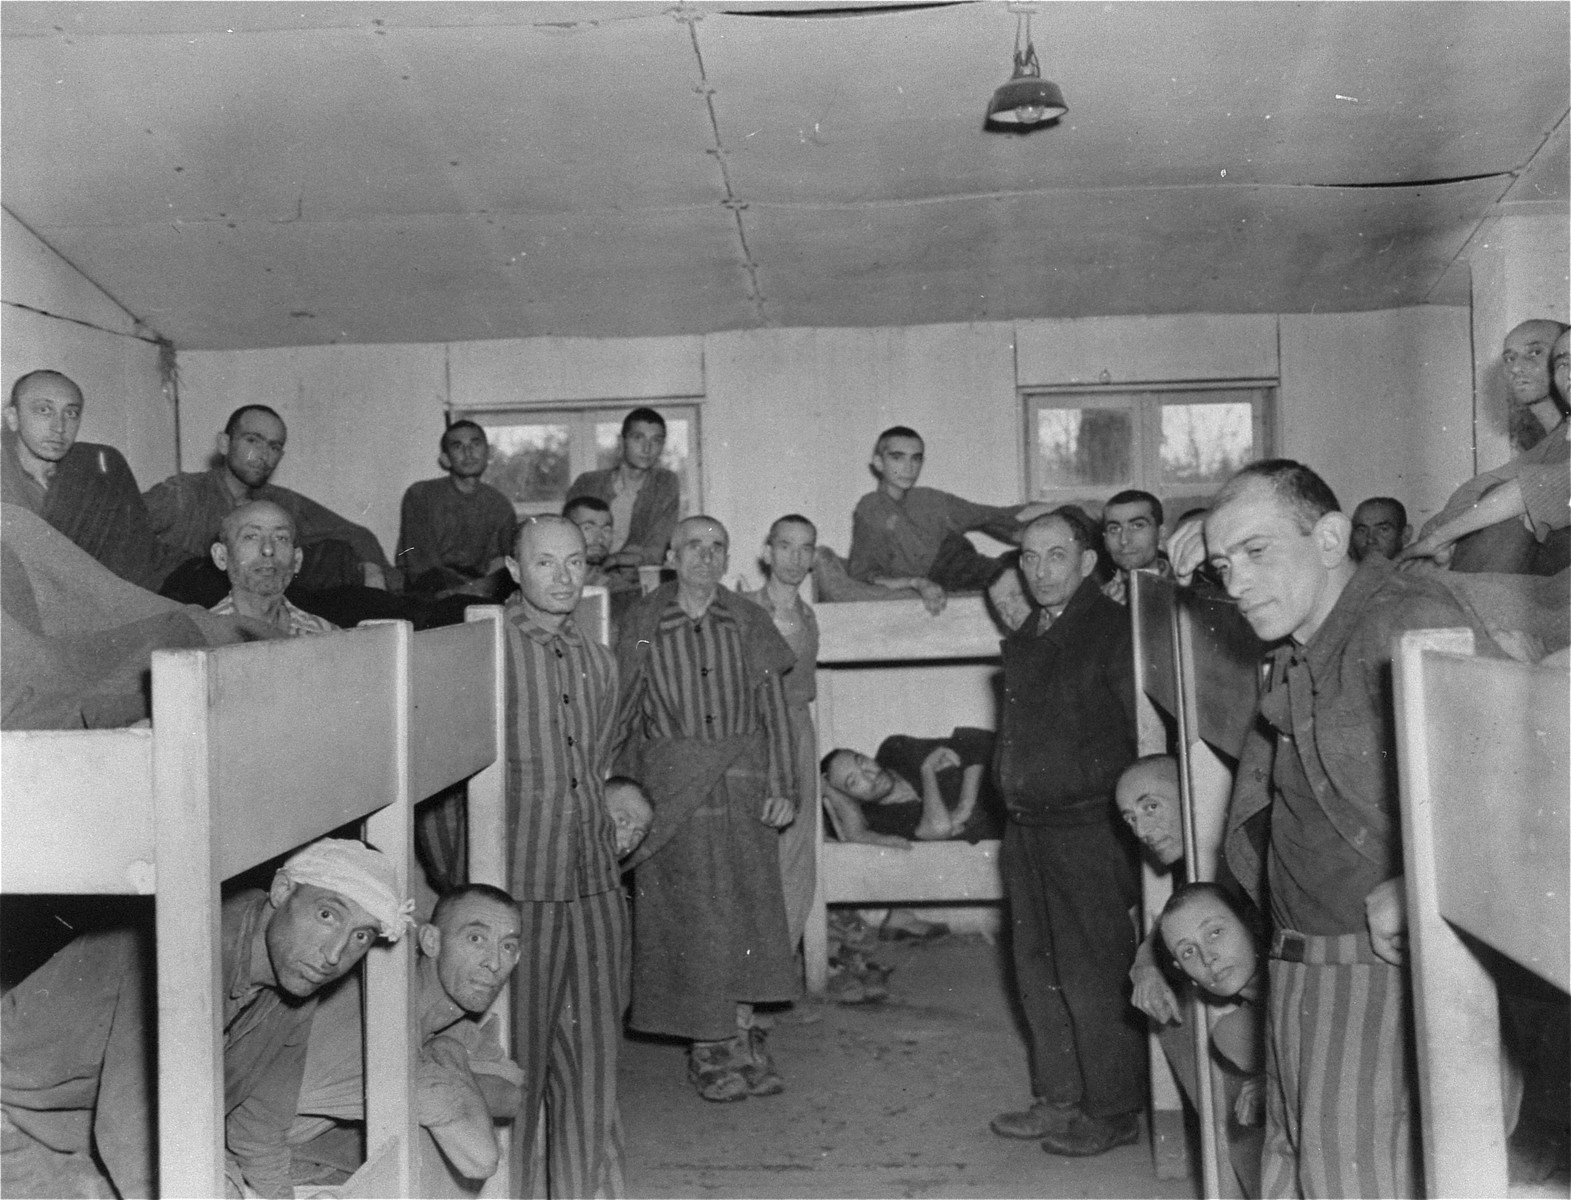 Survivors in a barracks in the Ampfing concentration camp several days after liberation.